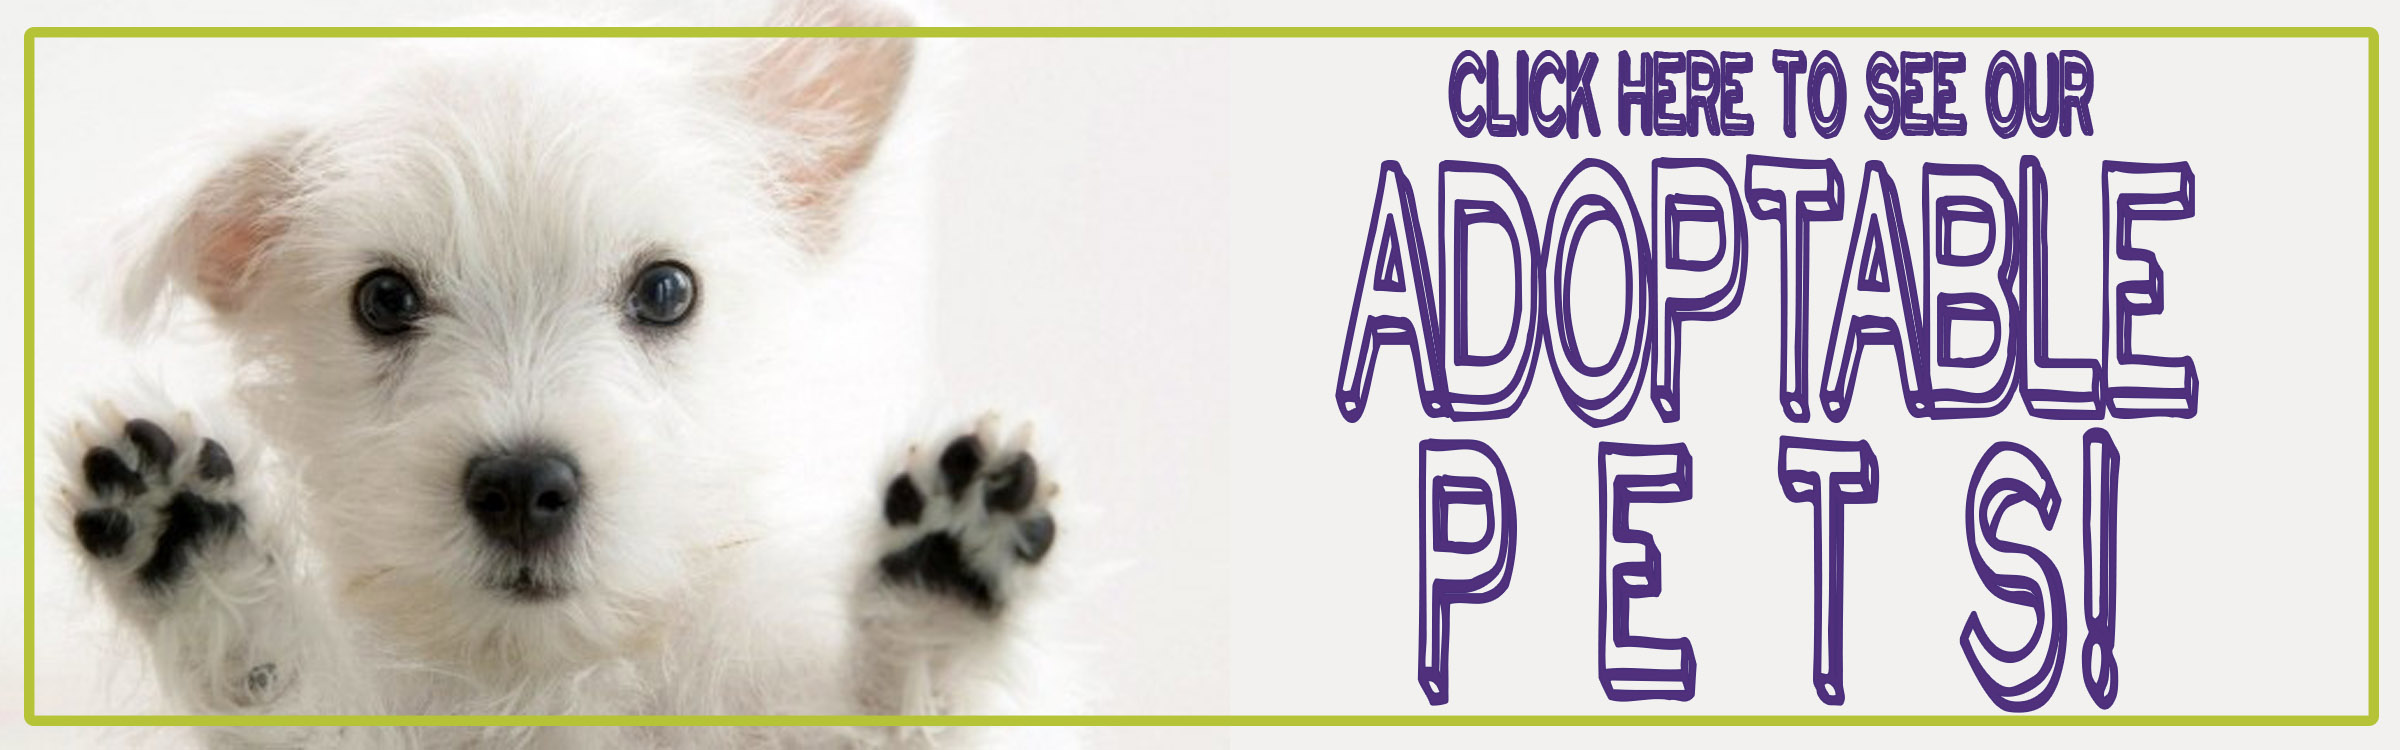 Top Ten Cute Pet Adoption Sites